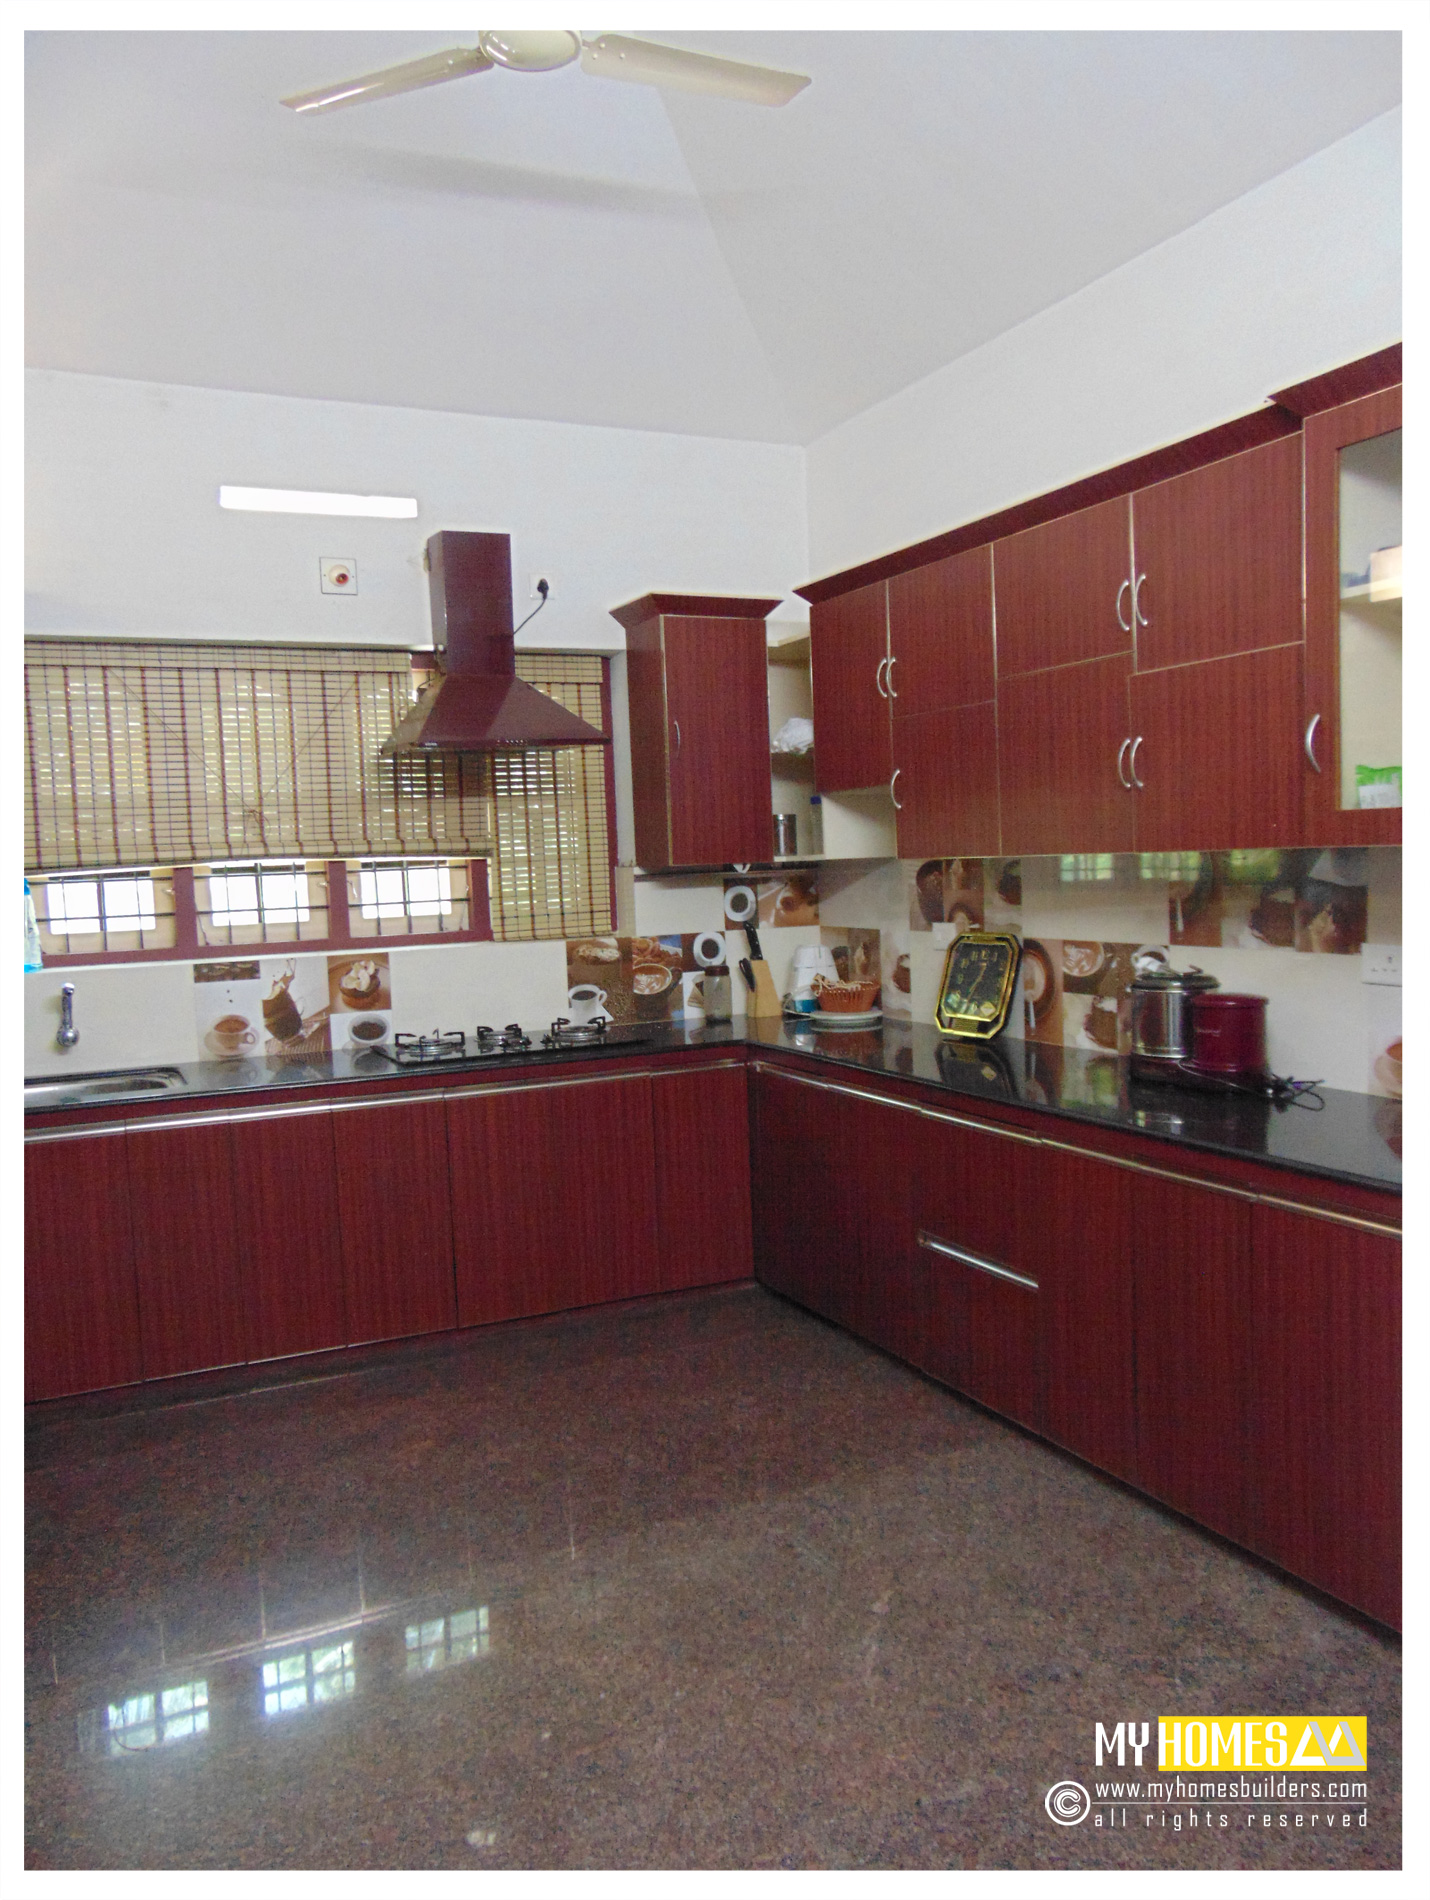 Latest Kitchen Design Kerala In Modular Inteior Designing Style